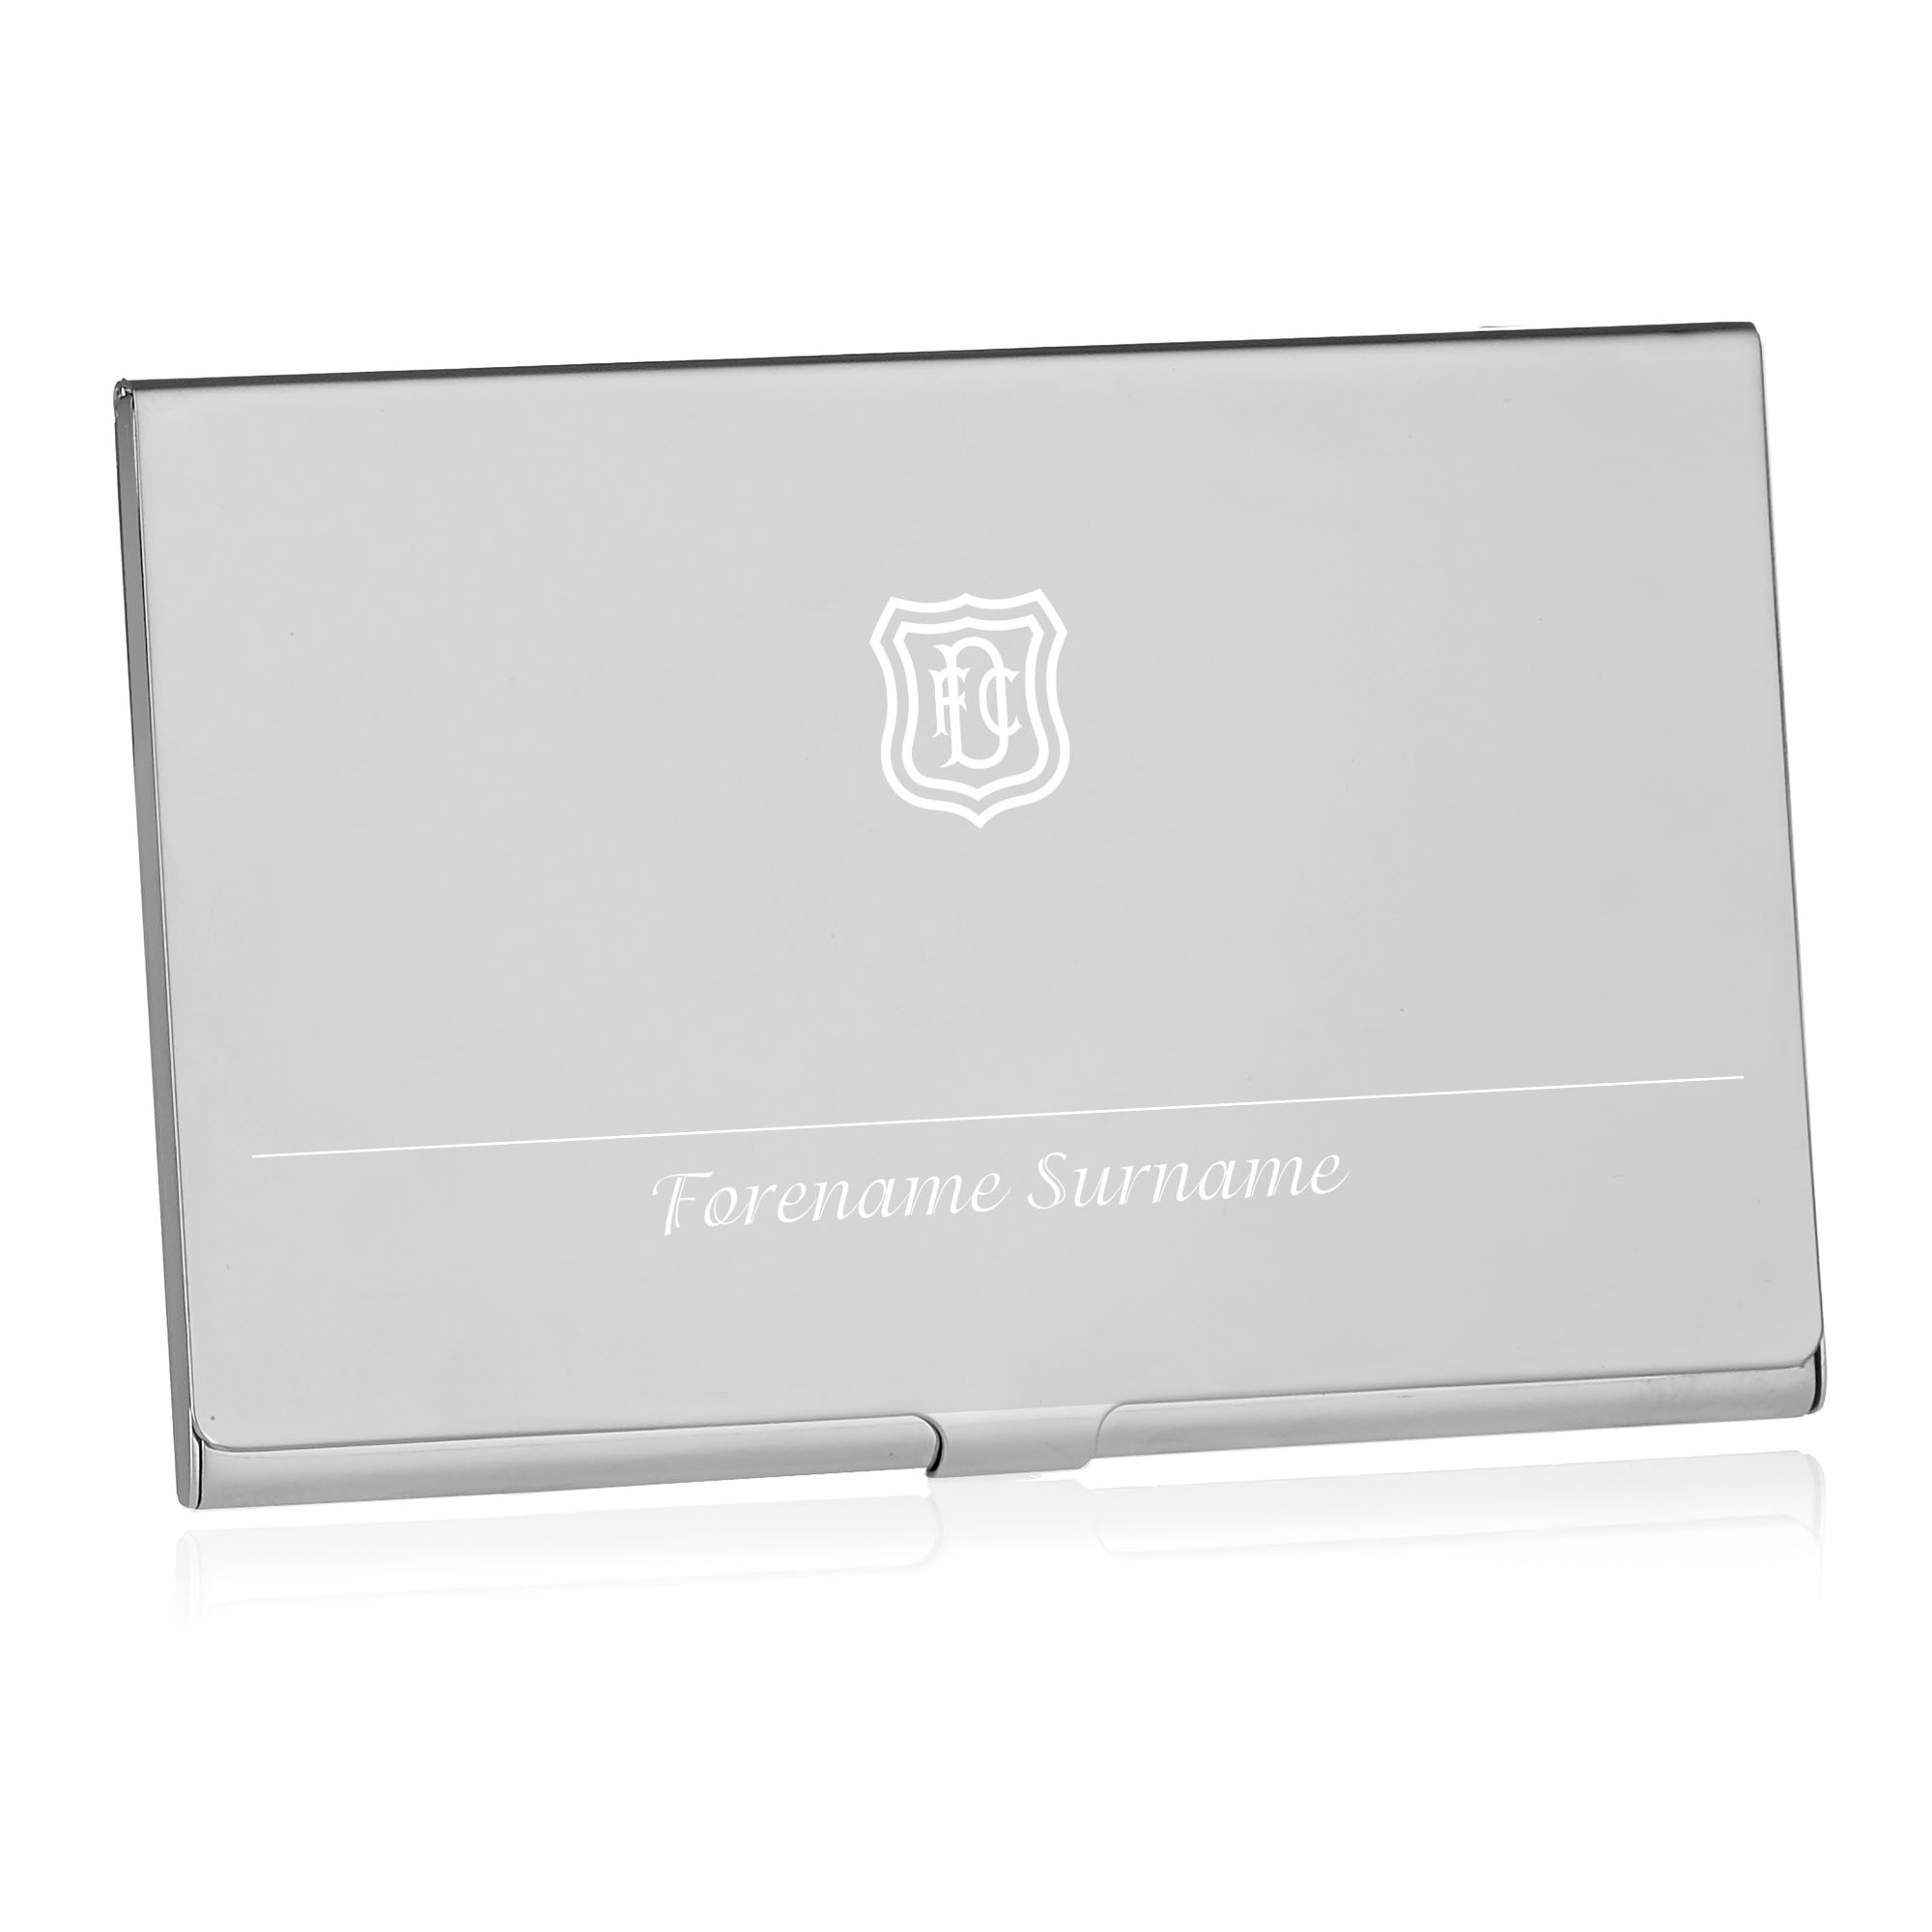 Dundee FC Executive Business Card Holder